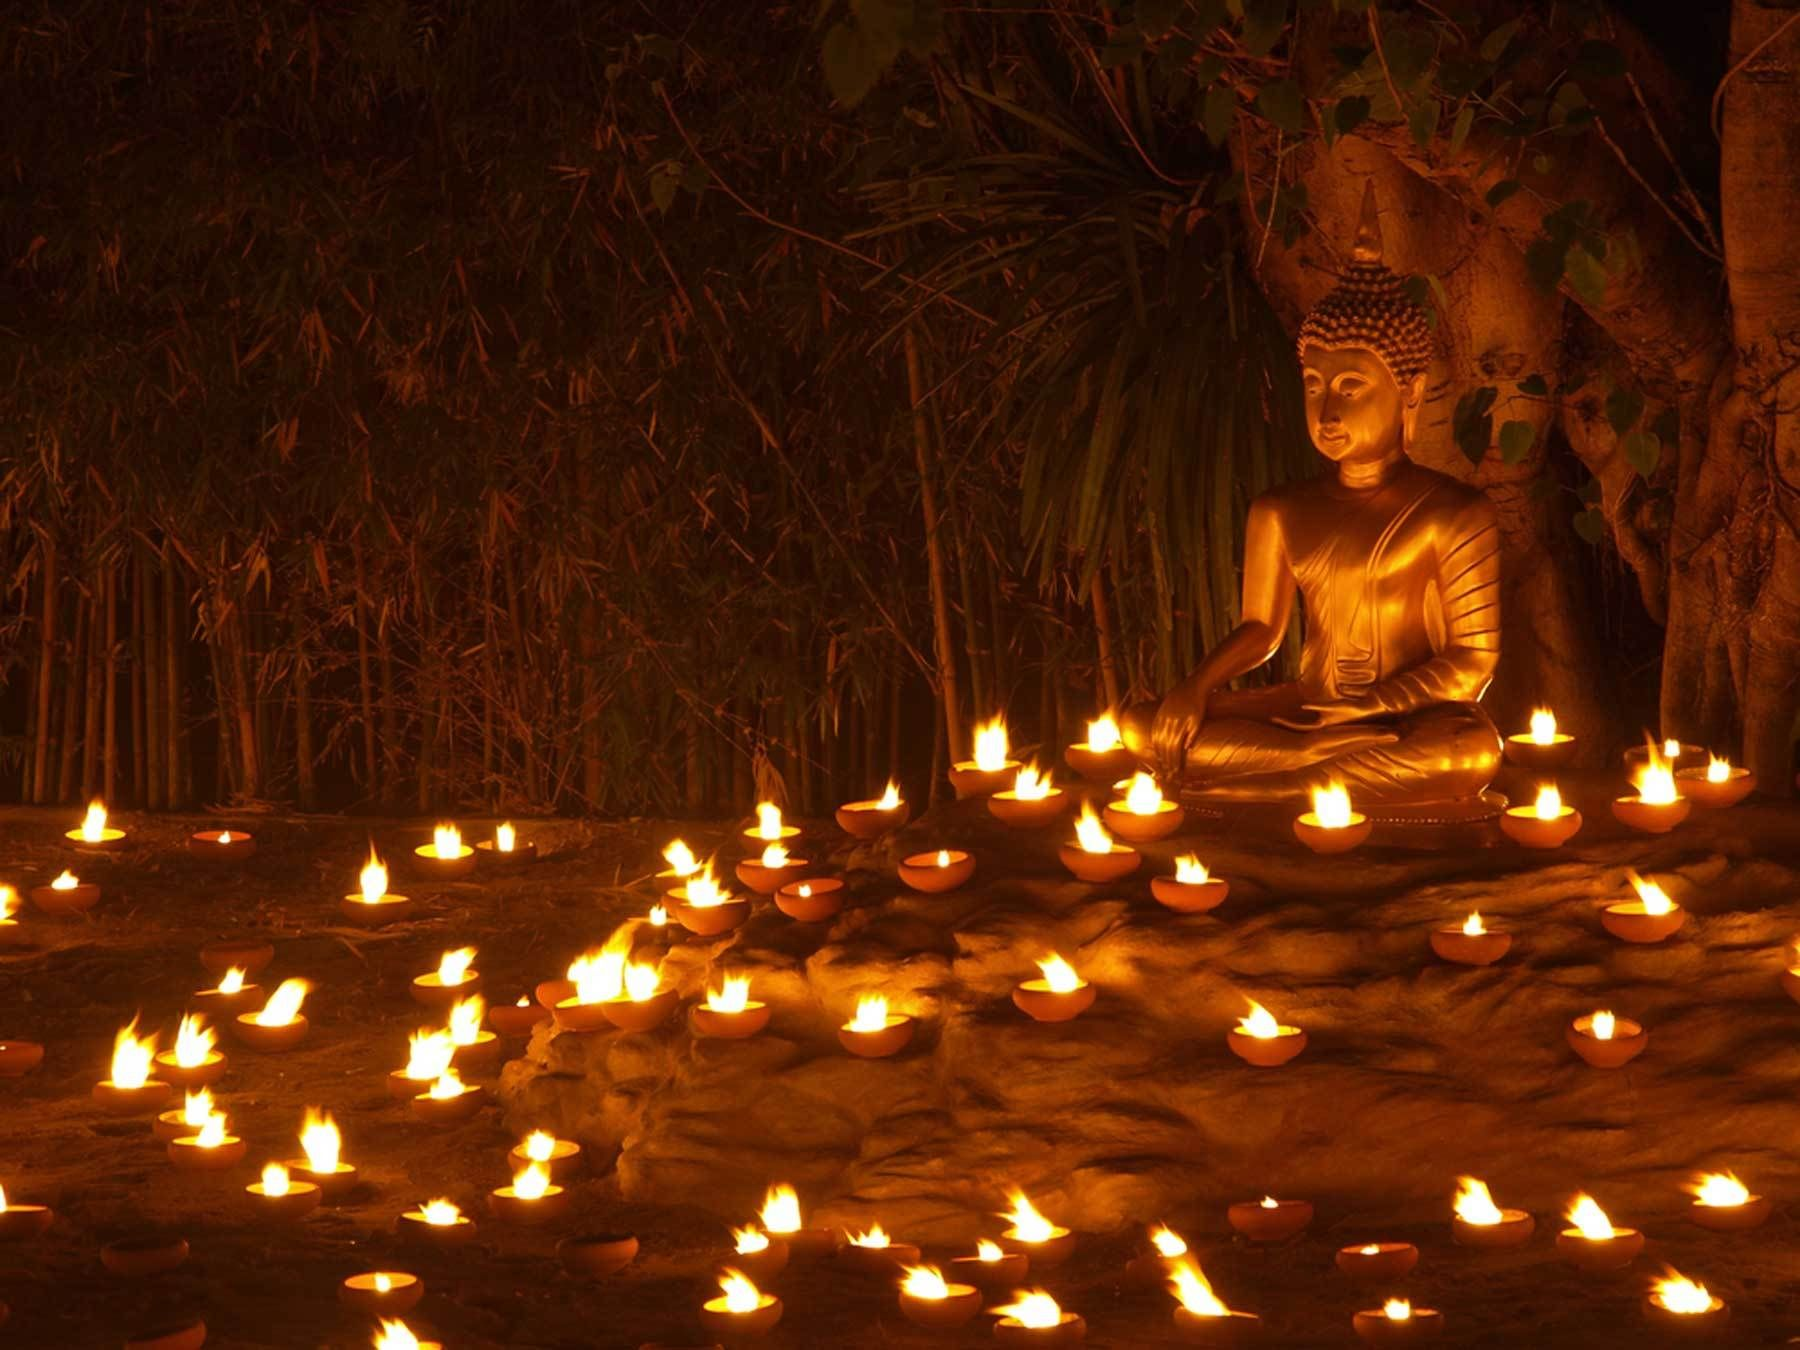 Asalha Puja spells Invocations for Dharma Day Wallpaper walls 1800x1350